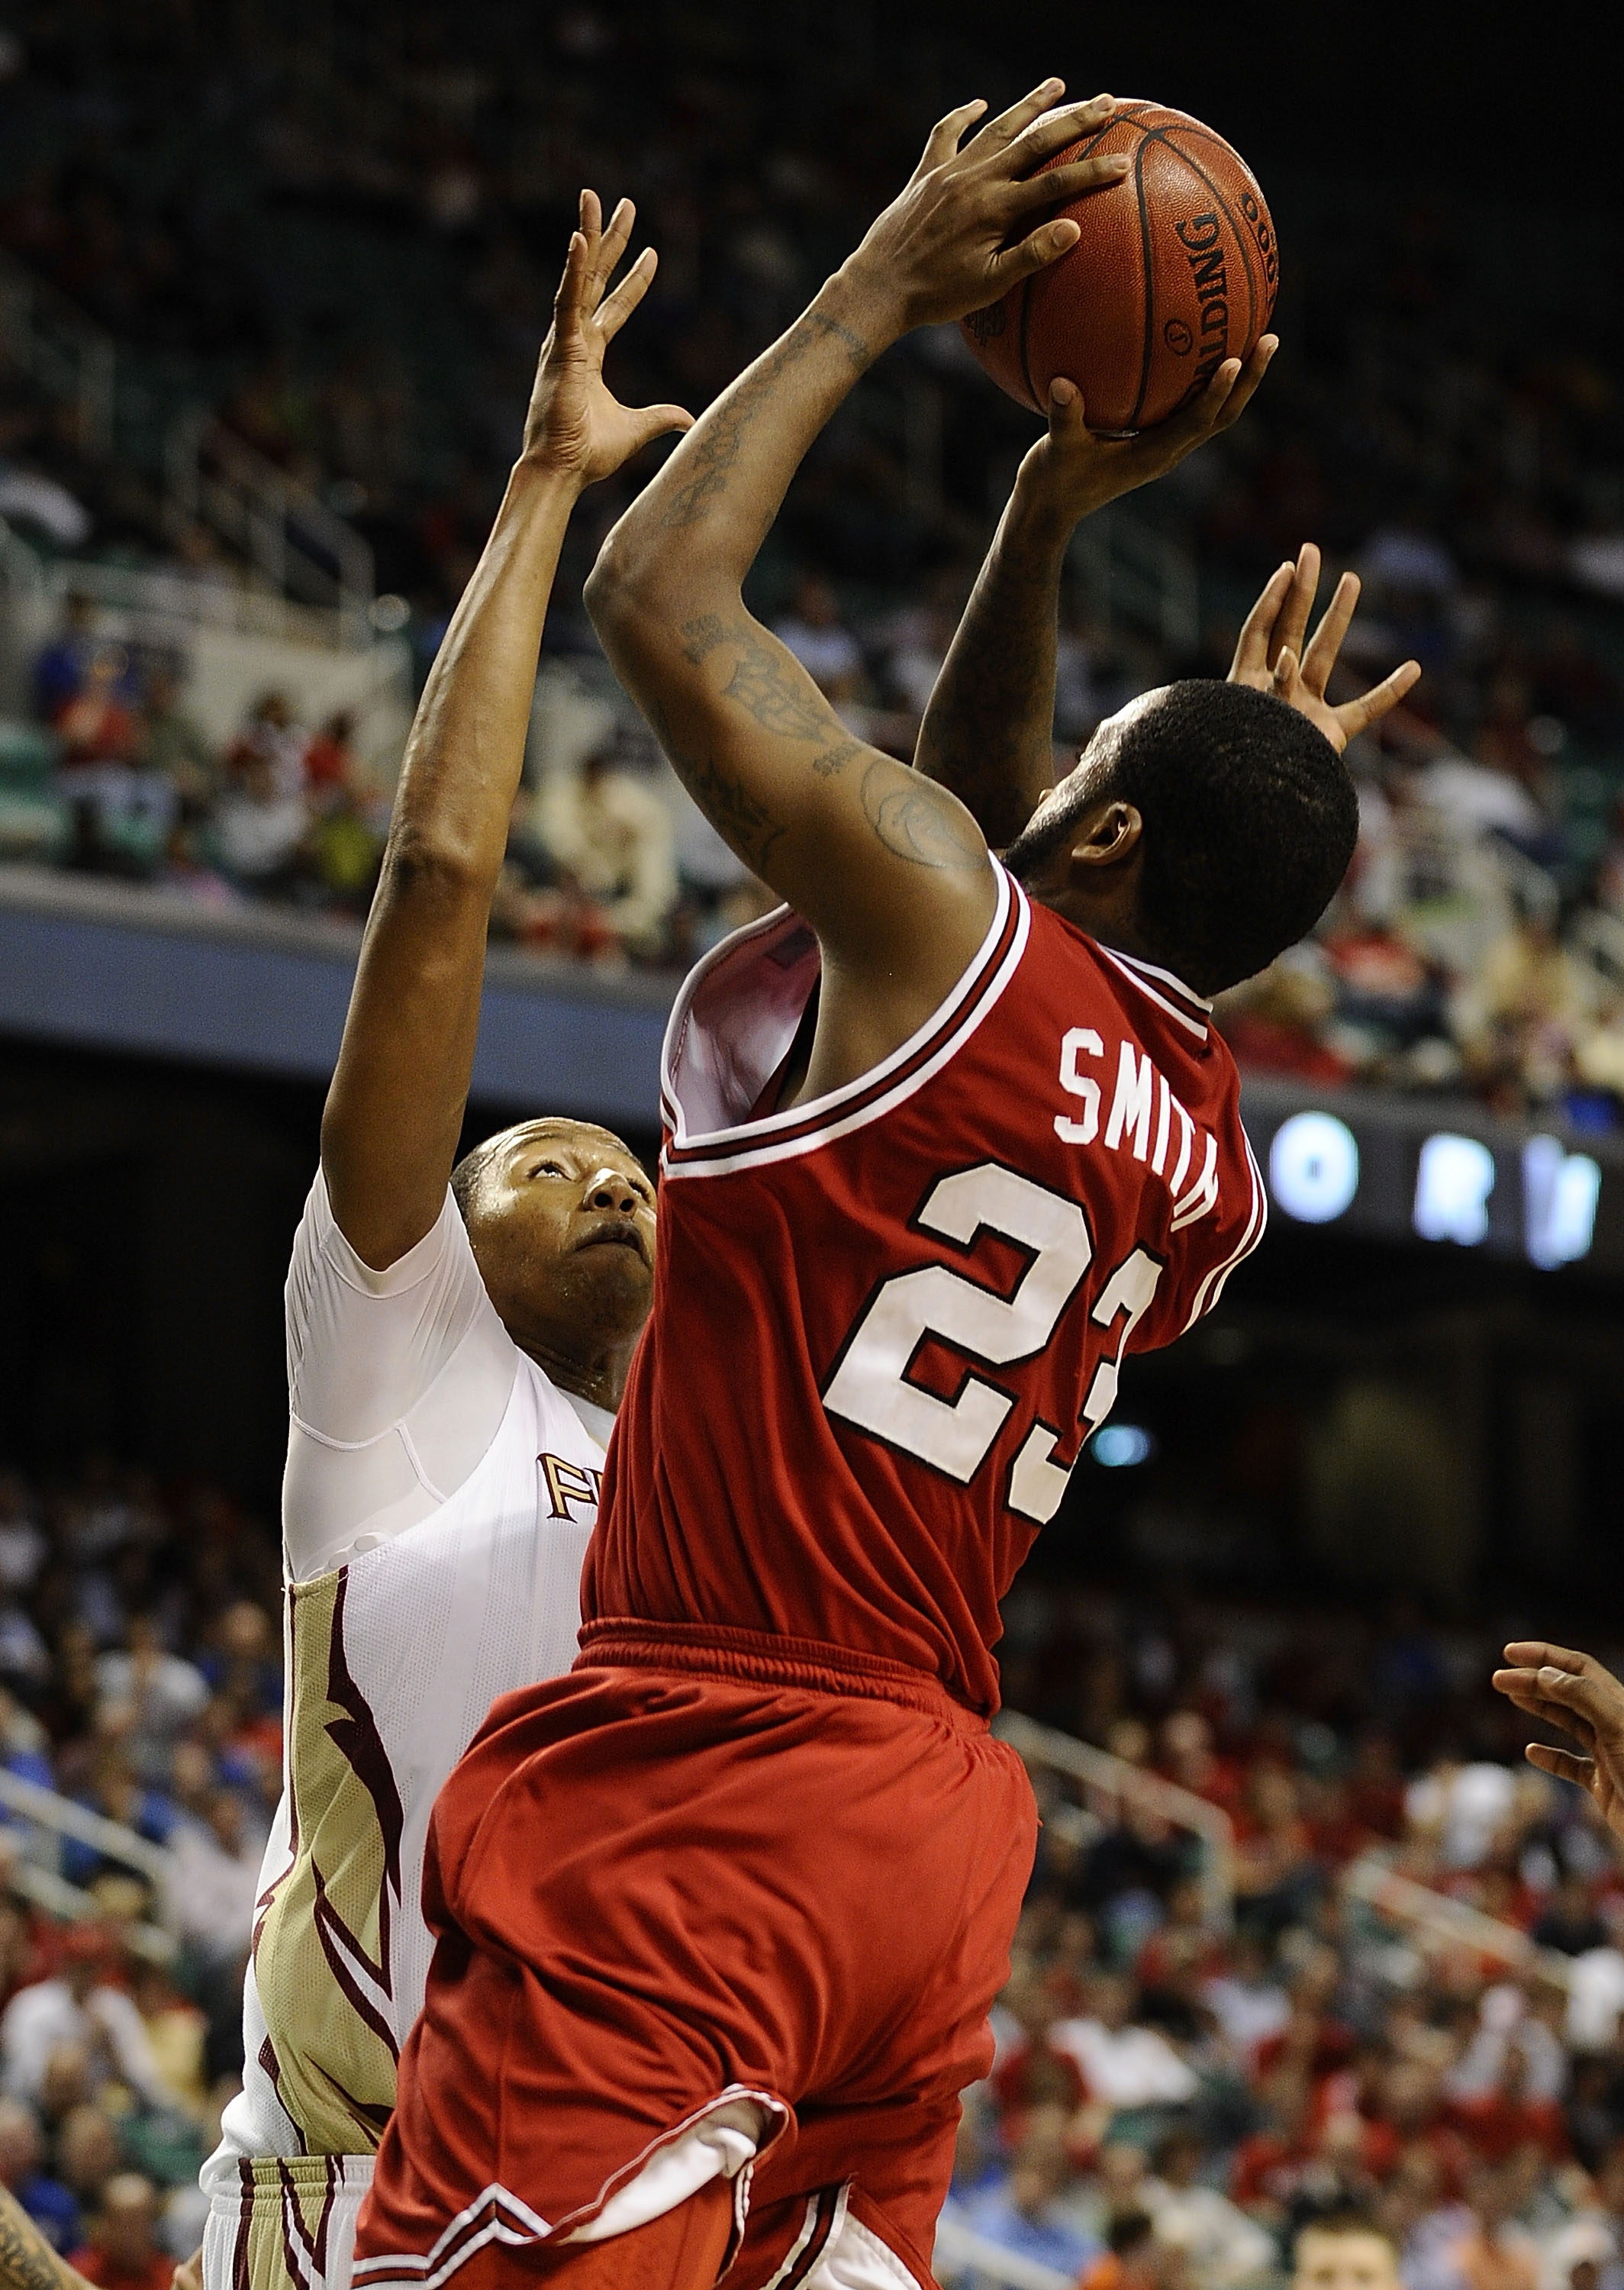 GREENSBORO, NC - MARCH 12:  Tracy Smith #23 of the North Carolina State Wolfpack shoots over Xavier Gibson #1 Florida State Seminoles in their quarterfinal game in the 2010 ACC Men's Basketball Tournament at the Greensboro Coliseum on March 12, 2010 in Gr